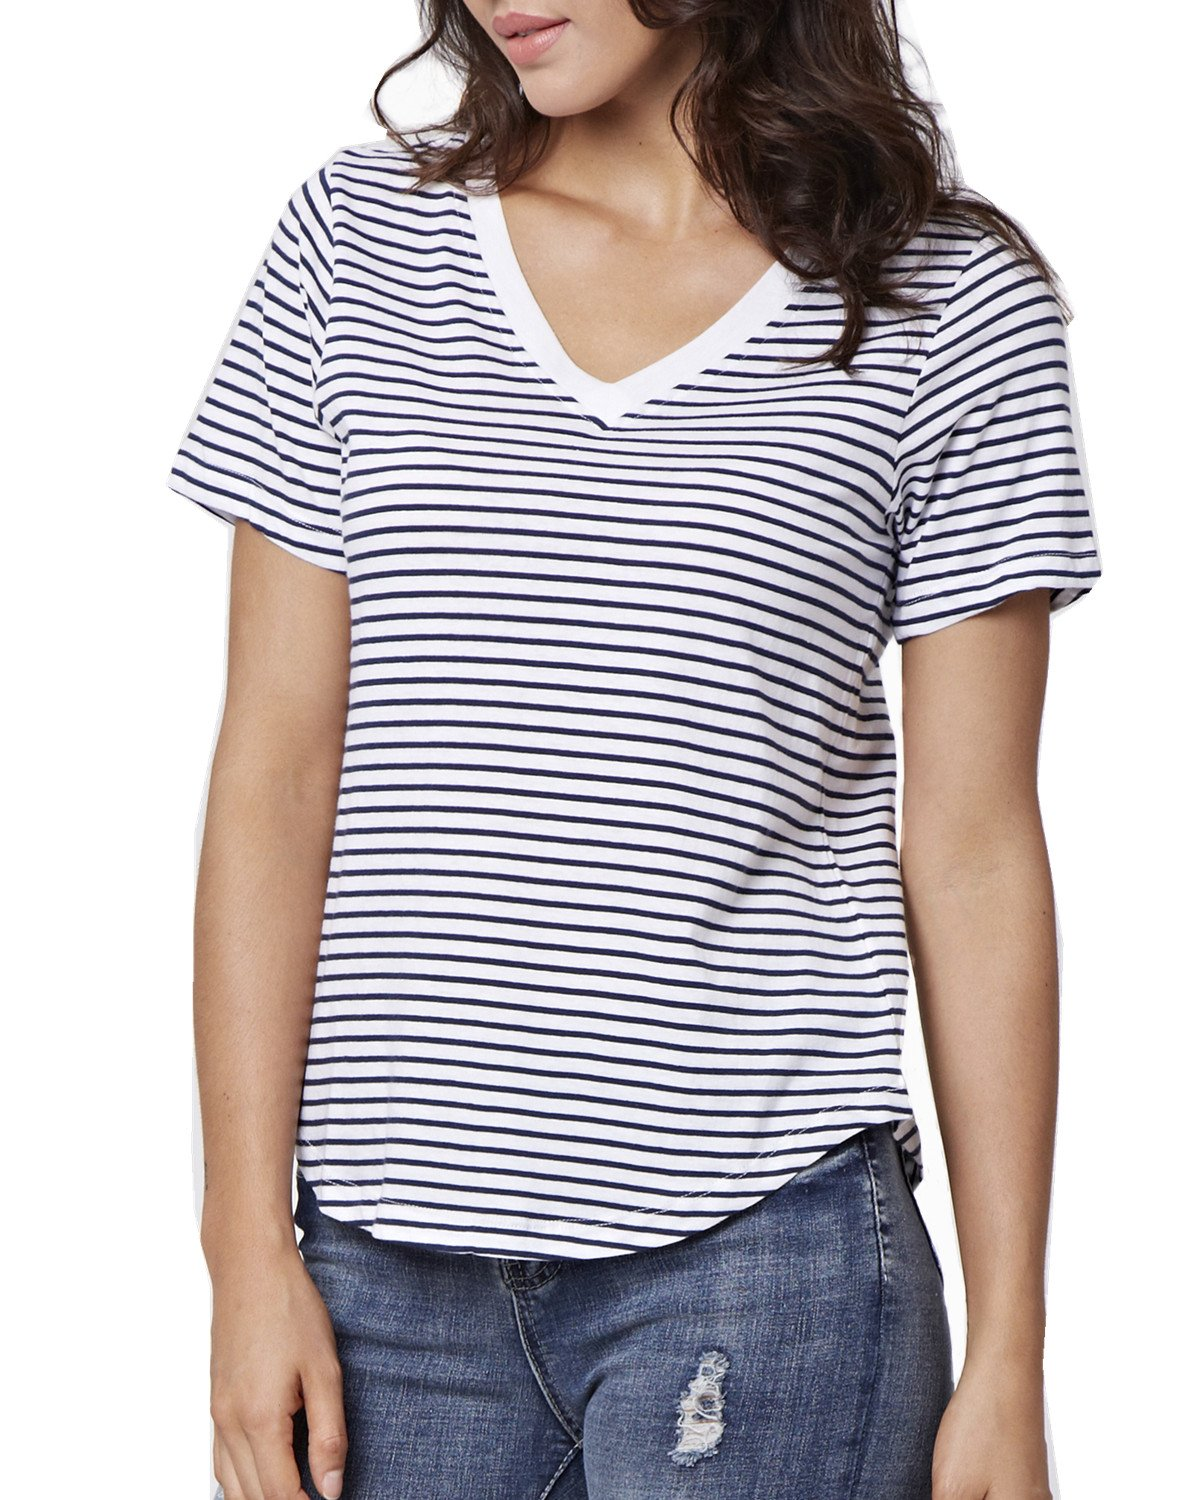 ENIDMIL Women's Striped T-Shirt Tee 100% Cotton(Blue-V,XL)